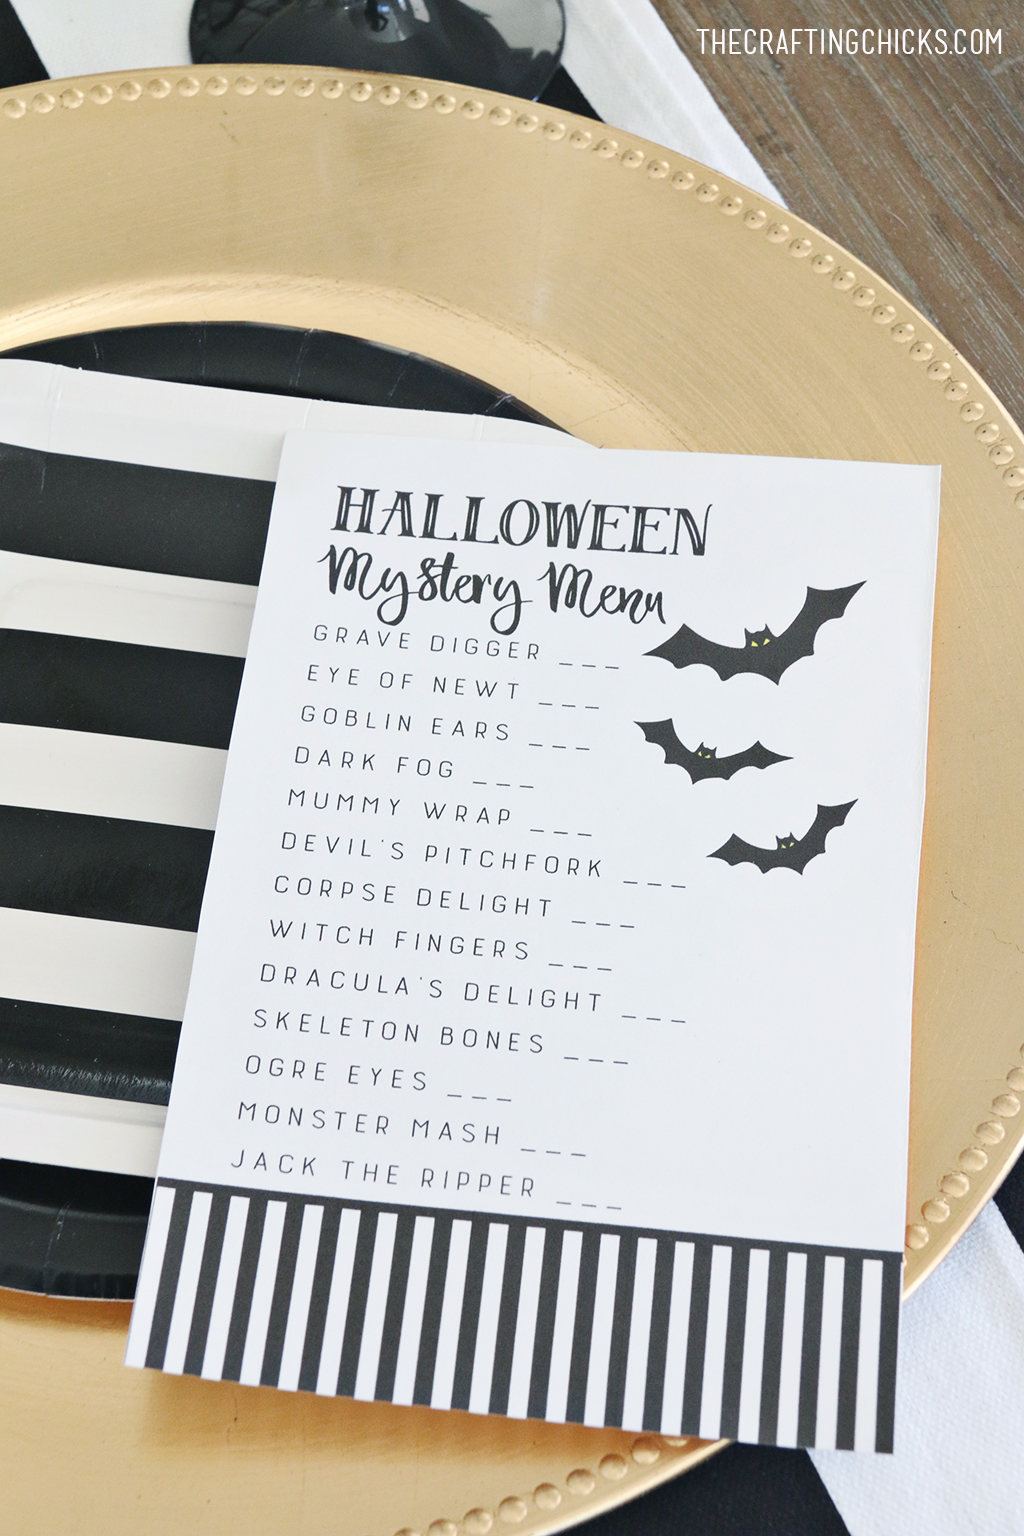 Sophisticated A Mystery Halloween Dinner Halloween Mystery Dinner Party Free Menu Crafting Ks Halloween Party Names College Halloween Party Names Bars Halloween Mystery Dinner Party Free Menu nice food Halloween Party Names